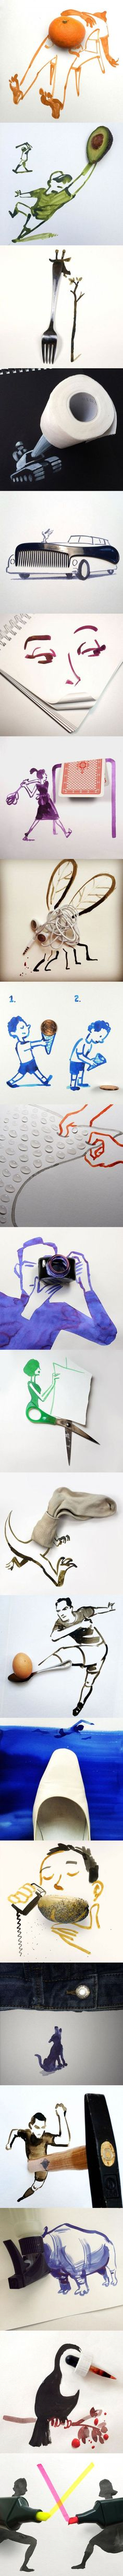 21 Creative Drawings Completed Using Everyday Objects By Christoph Niemann